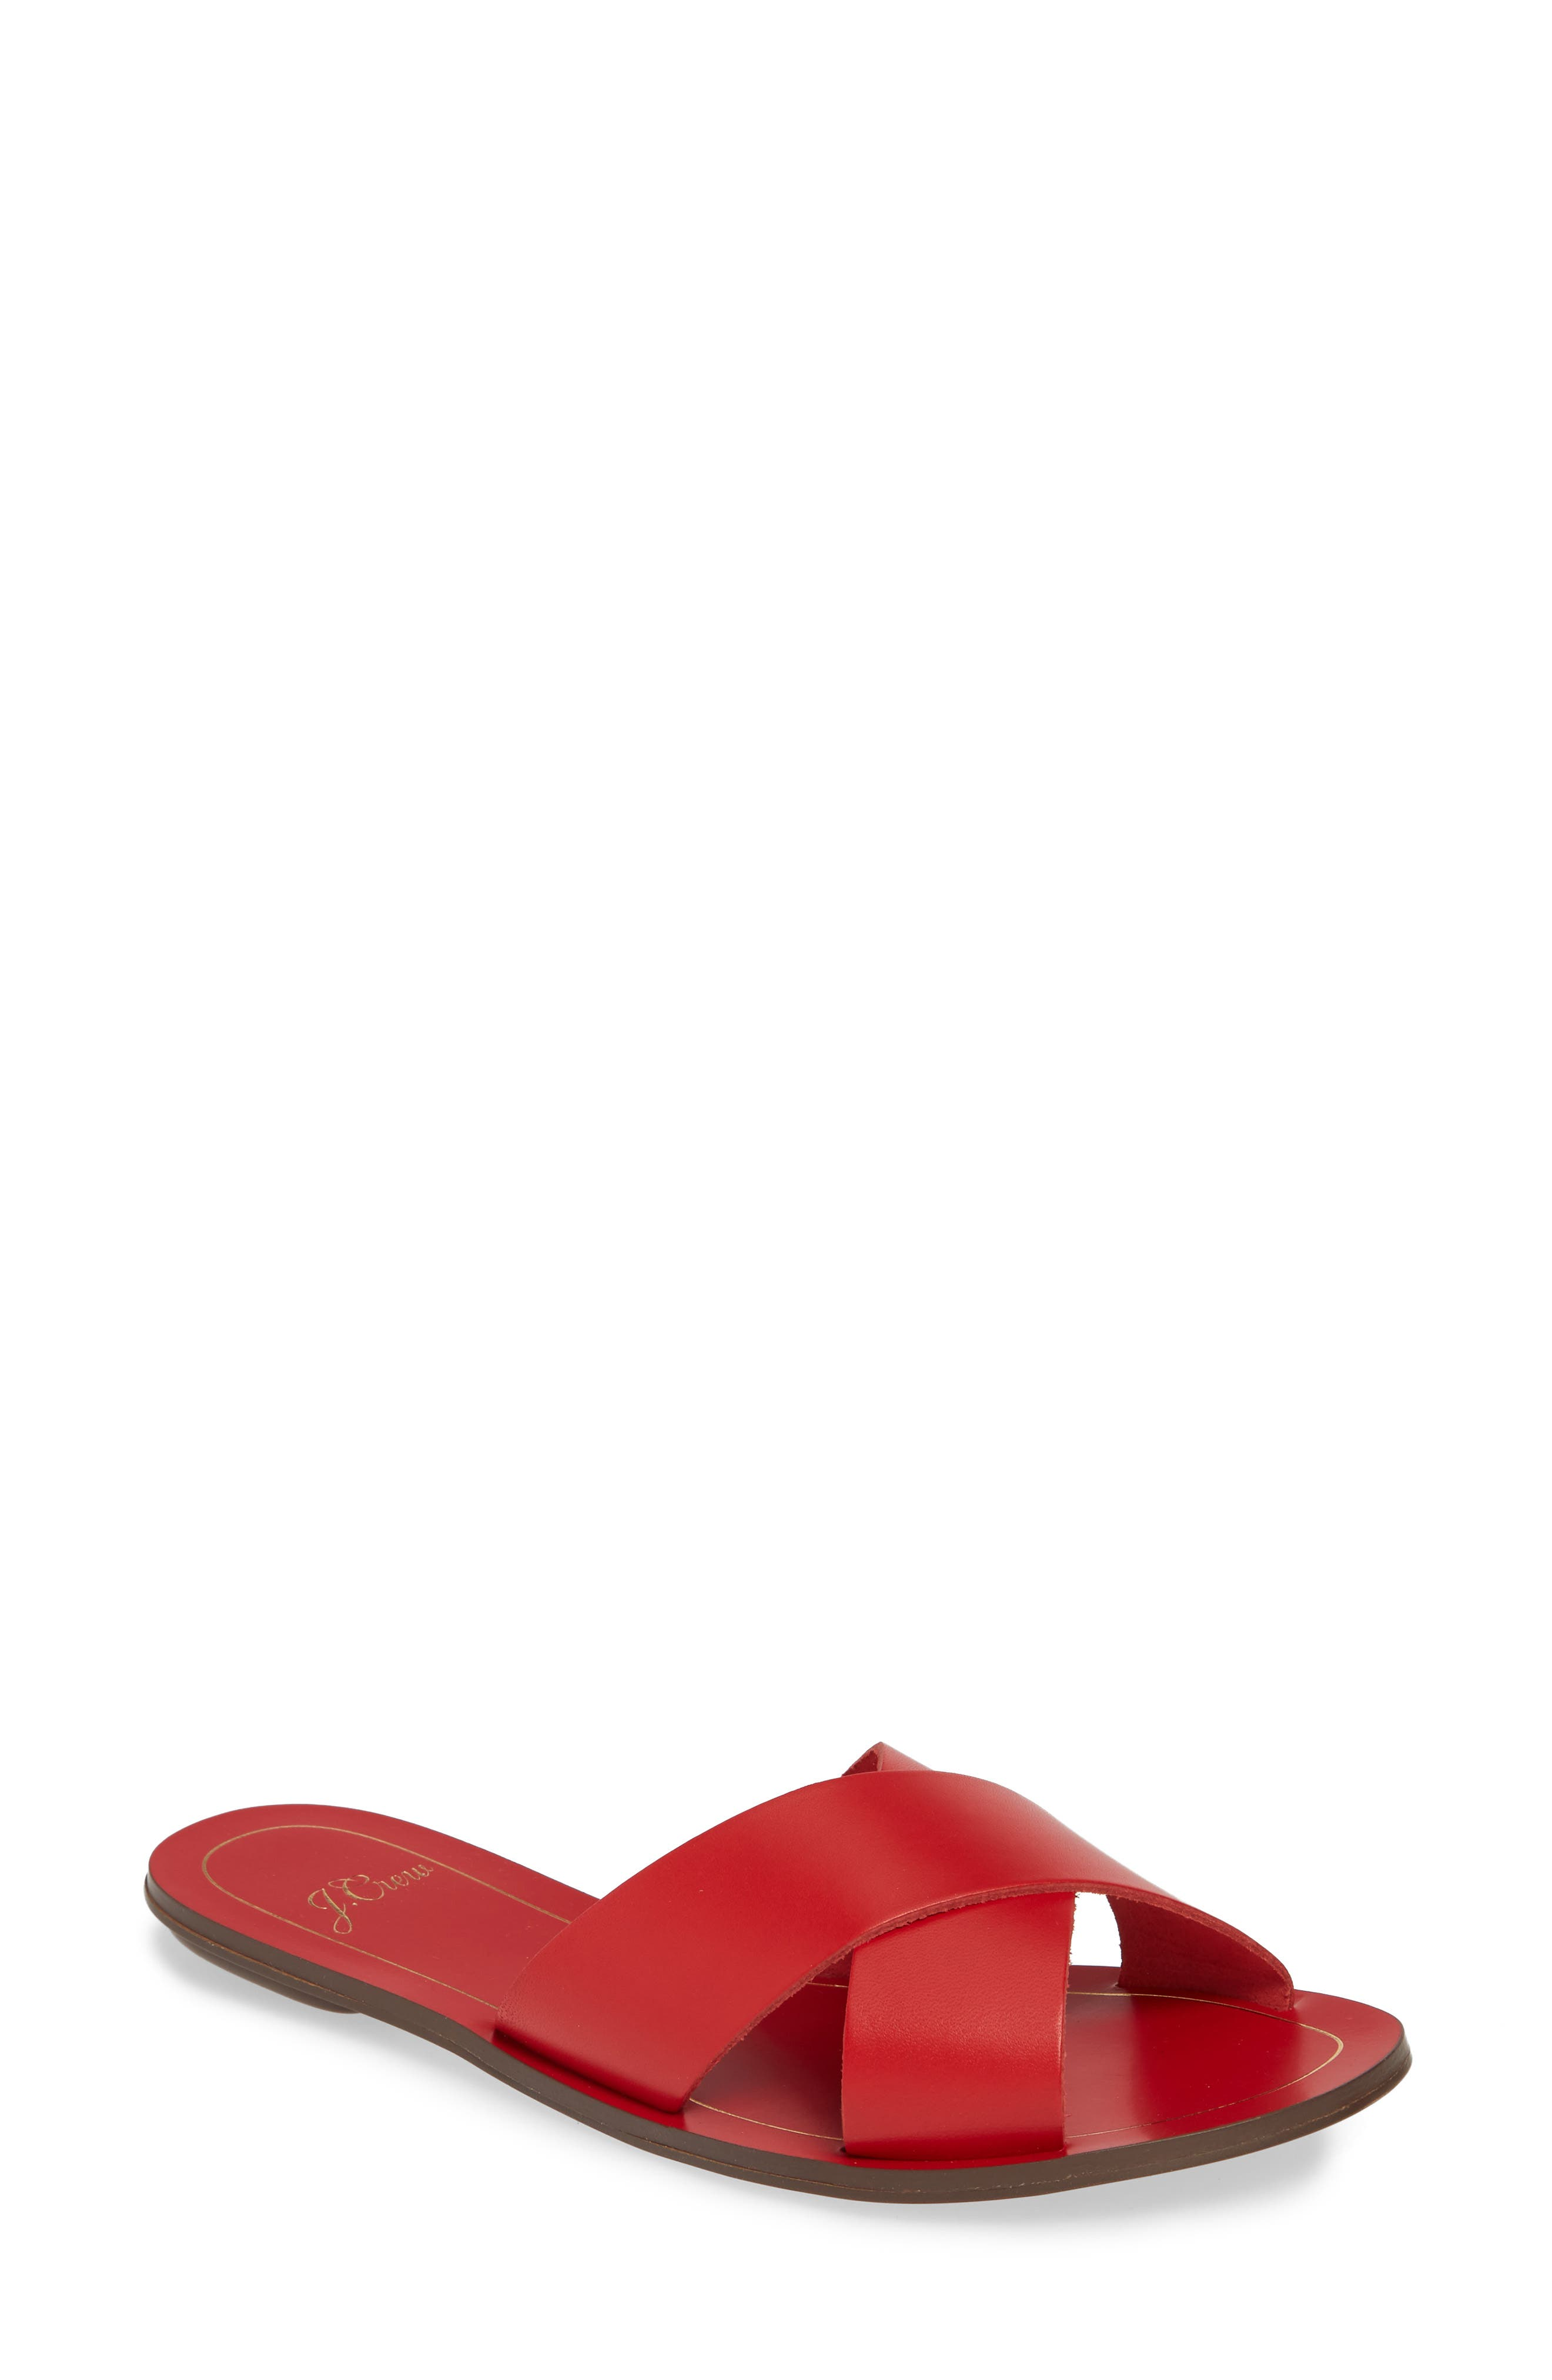 J.CREW Cyprus Slide Sandal, Main, color, BOLD RED LEATHER